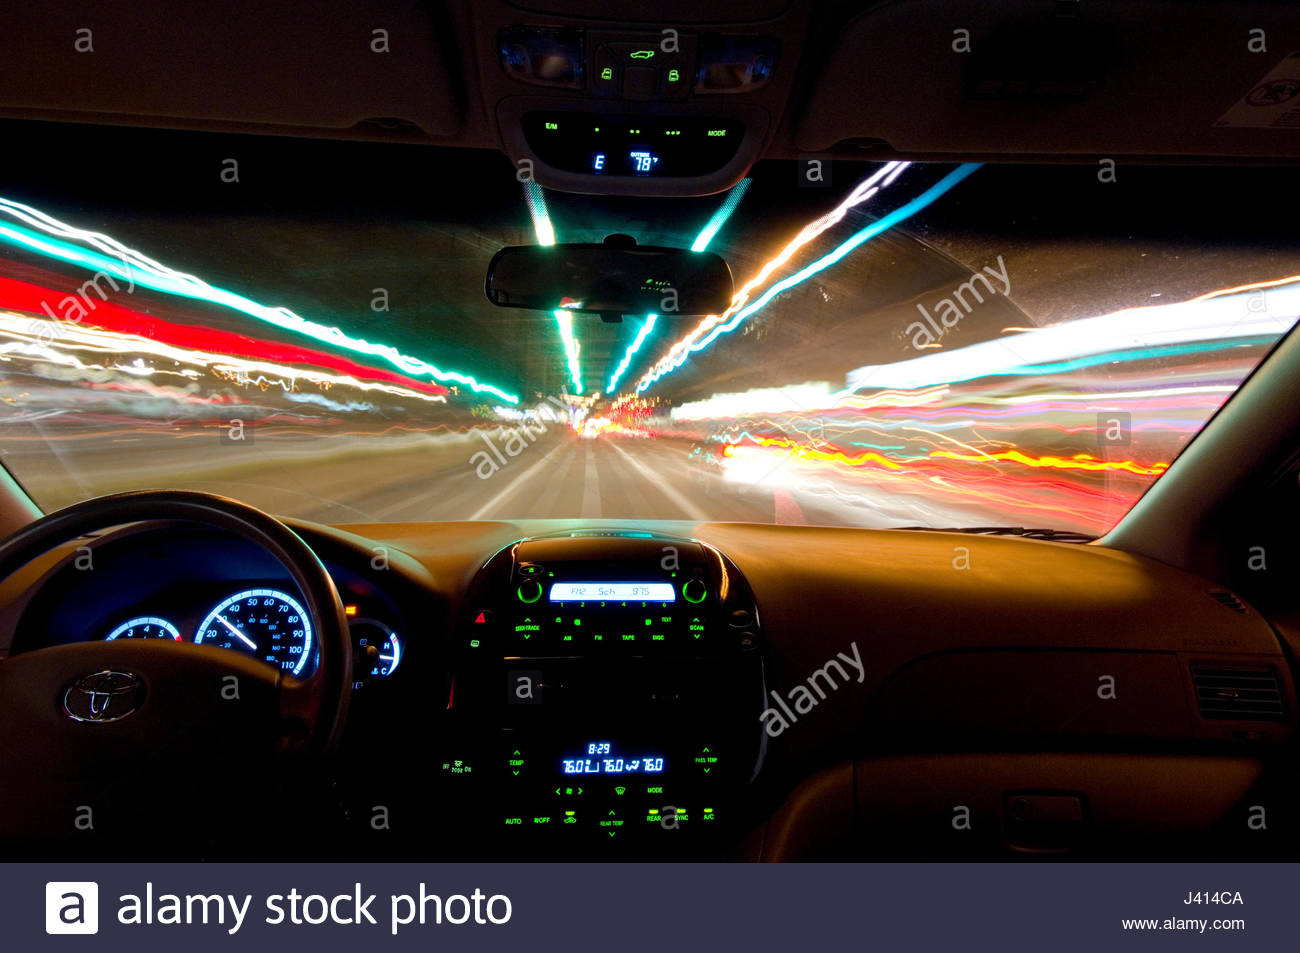 Toyota Sienna Minivan driving at night with motion blur of lights along the road Stock Photo